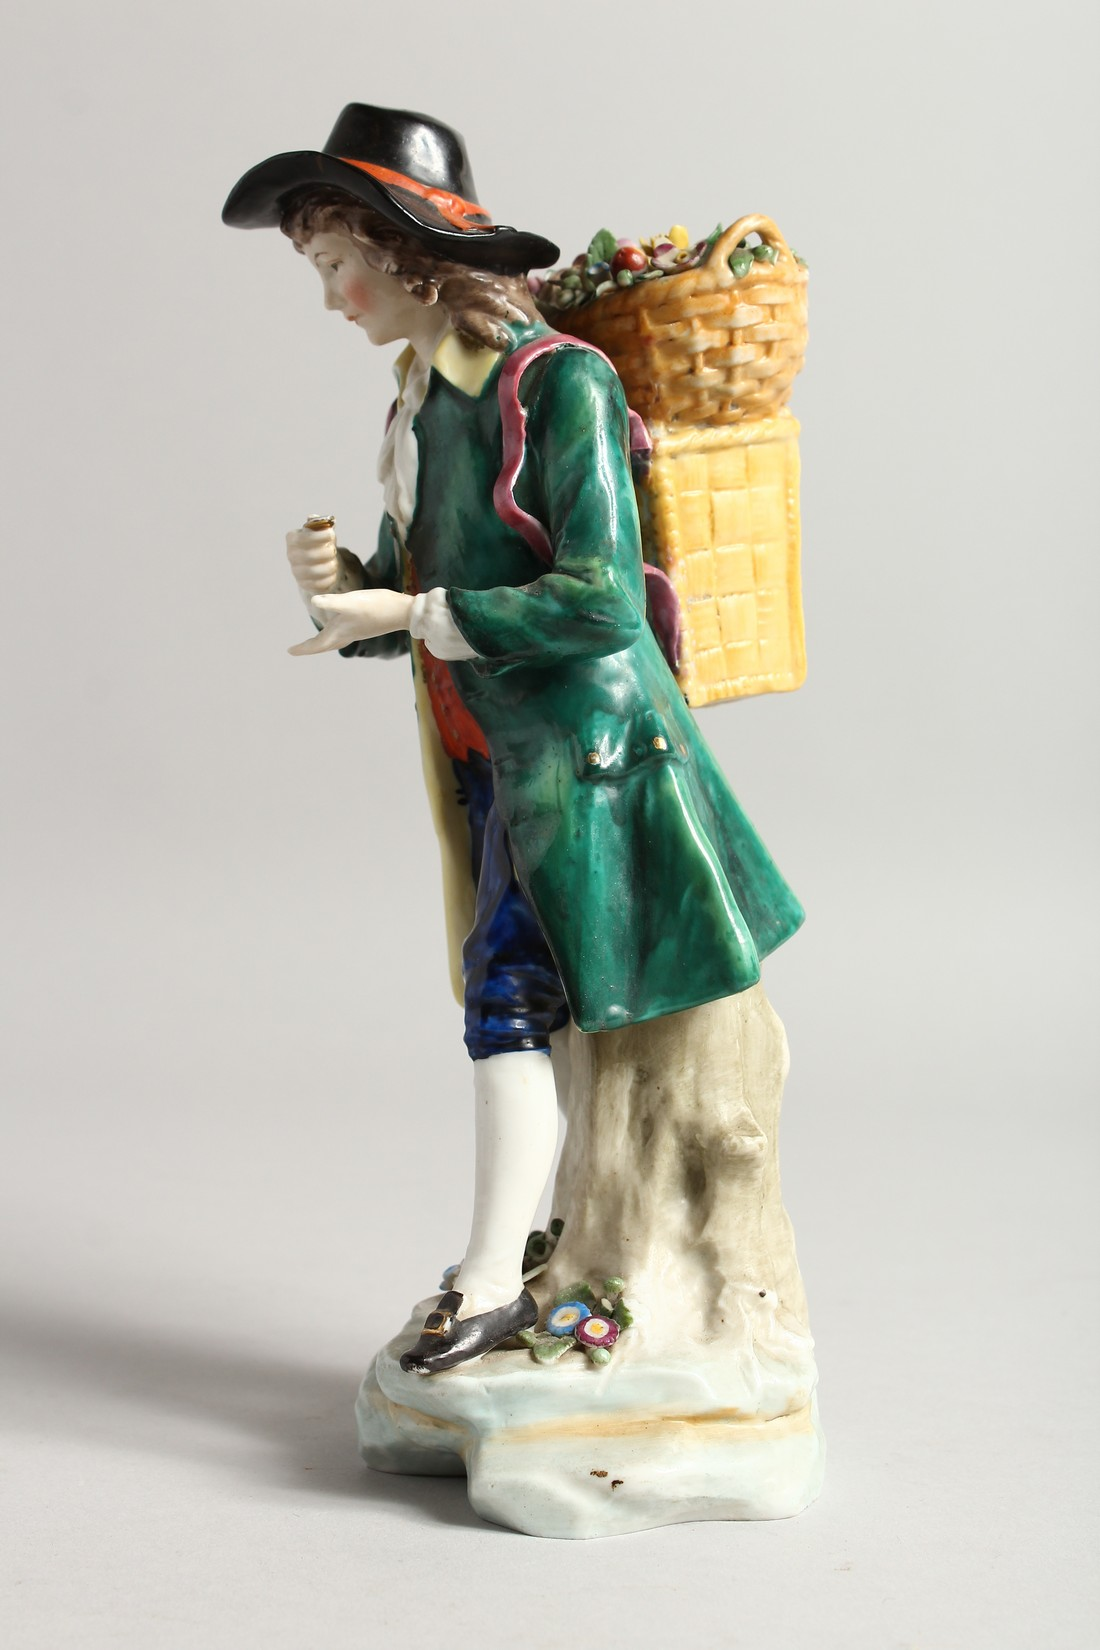 A SAMSON CHELSEA DERRY PORCELAIN FIGURE of a man, a basket of flowers on his back 9ins high. - Image 2 of 6